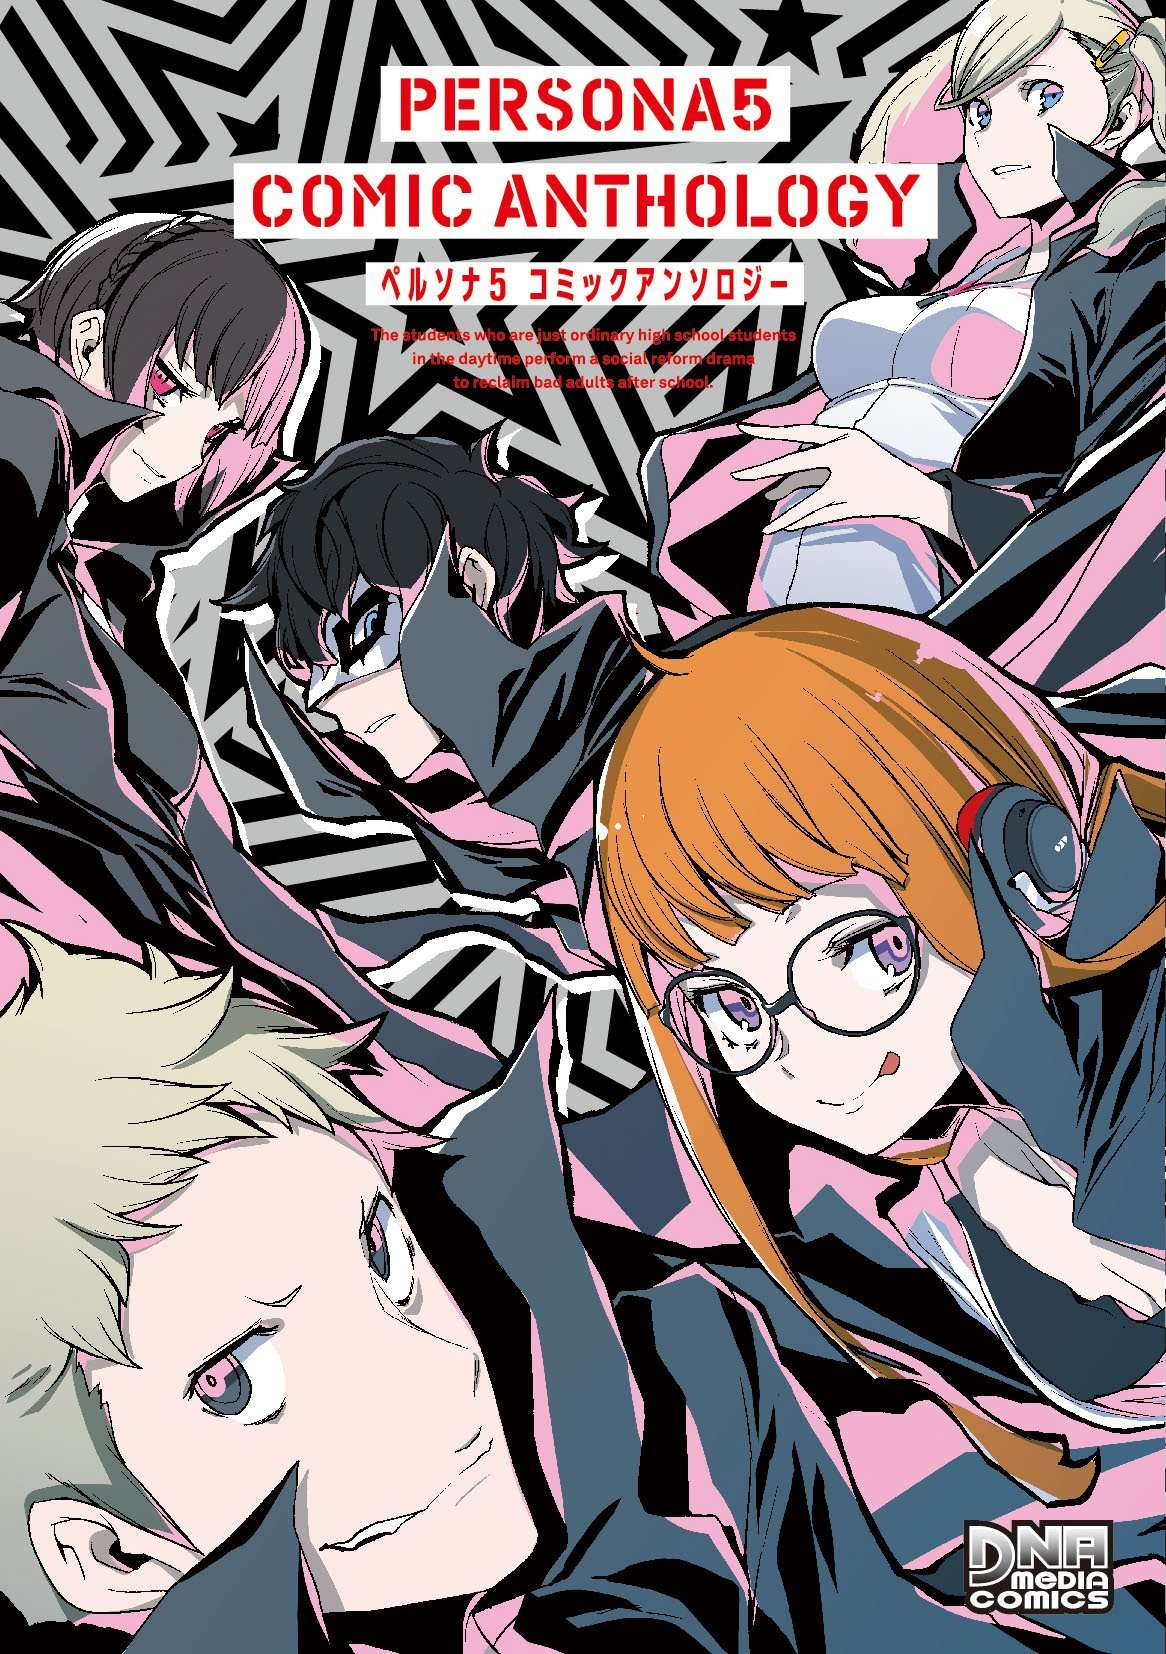 Persona 5 Comic Anthology Dna Media Comics Cover Released Persona Central